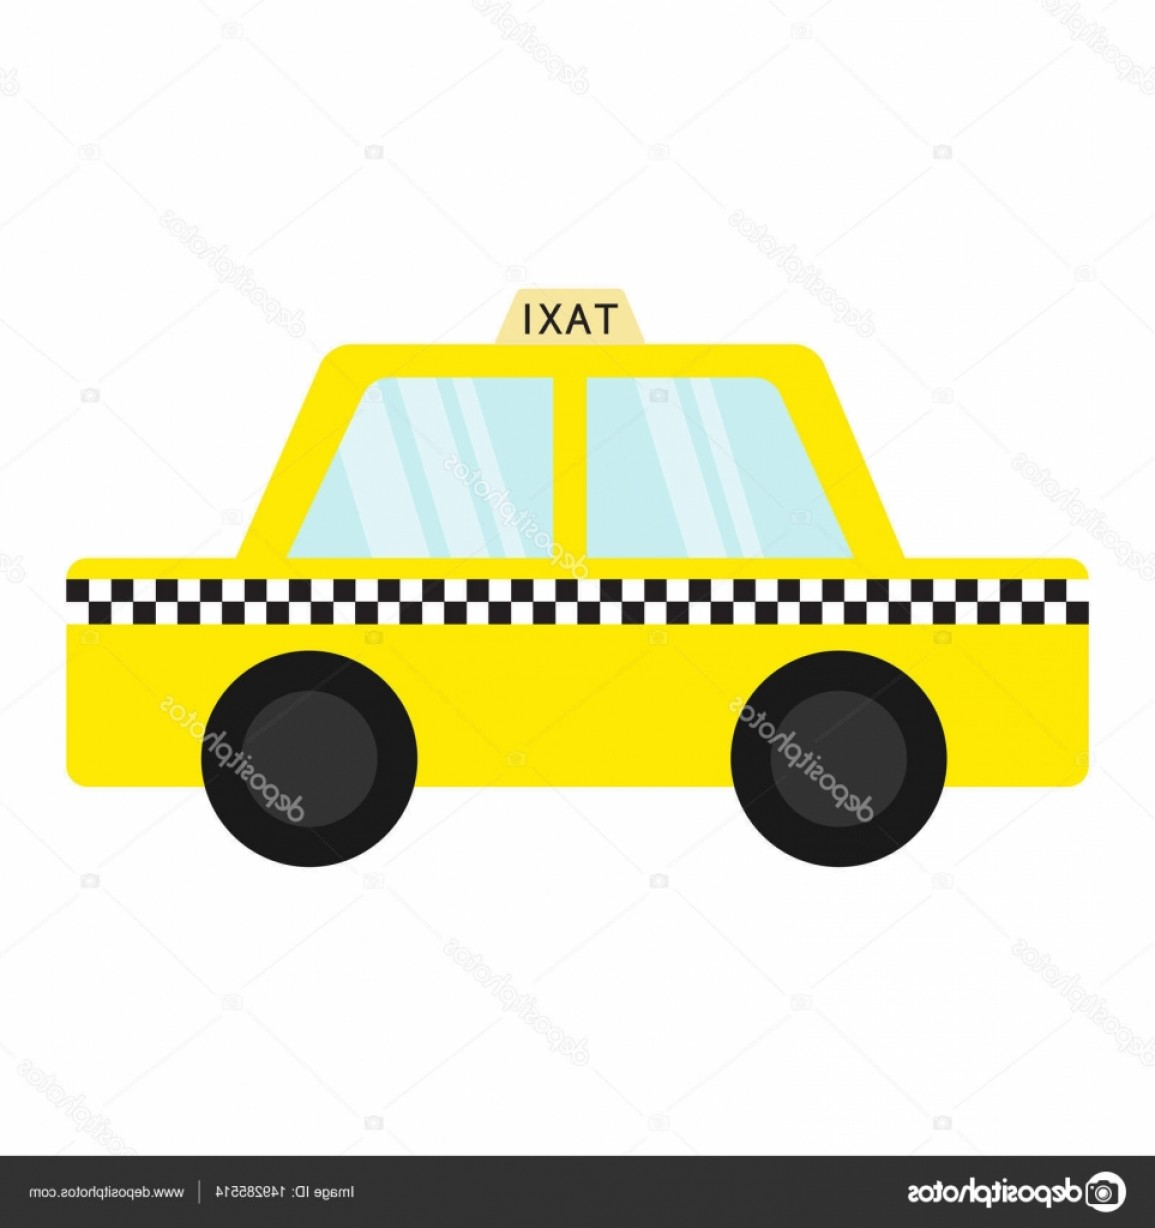 New York Taxi Cab Vector: Stock Illustration Taxi Car Cab Icon